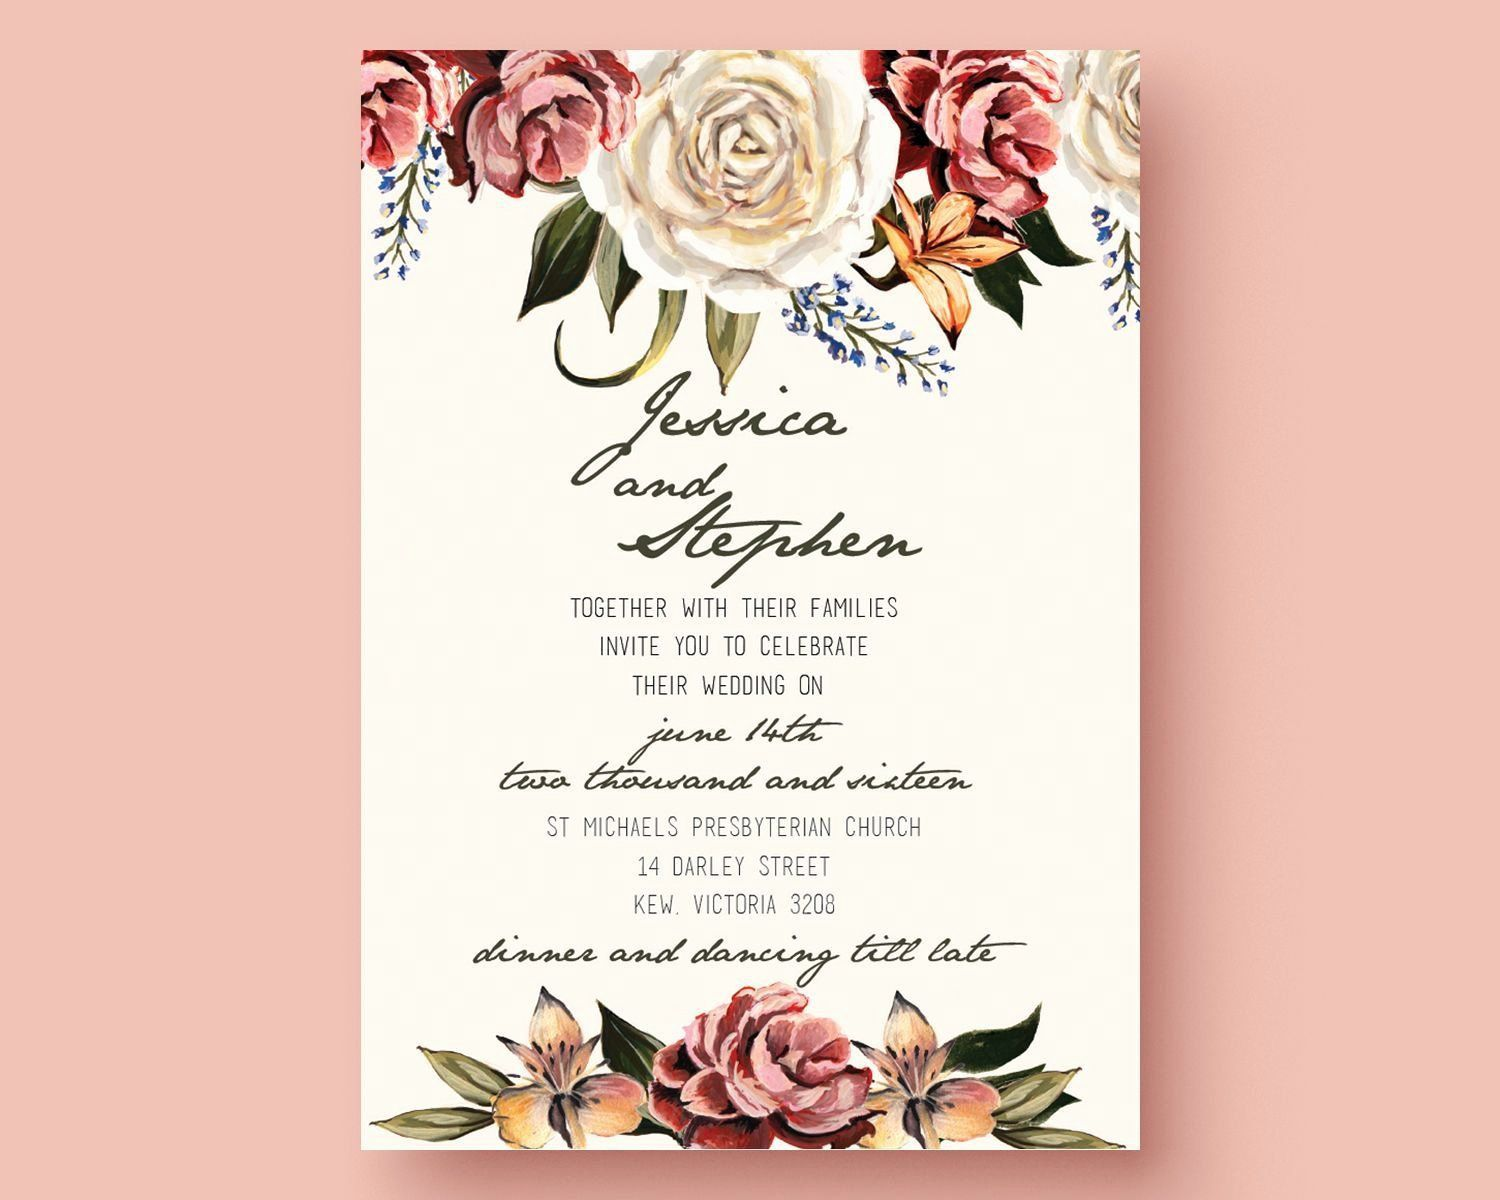 001 Awful Free Wedding Invitation Template For Word 2019 Idea Full